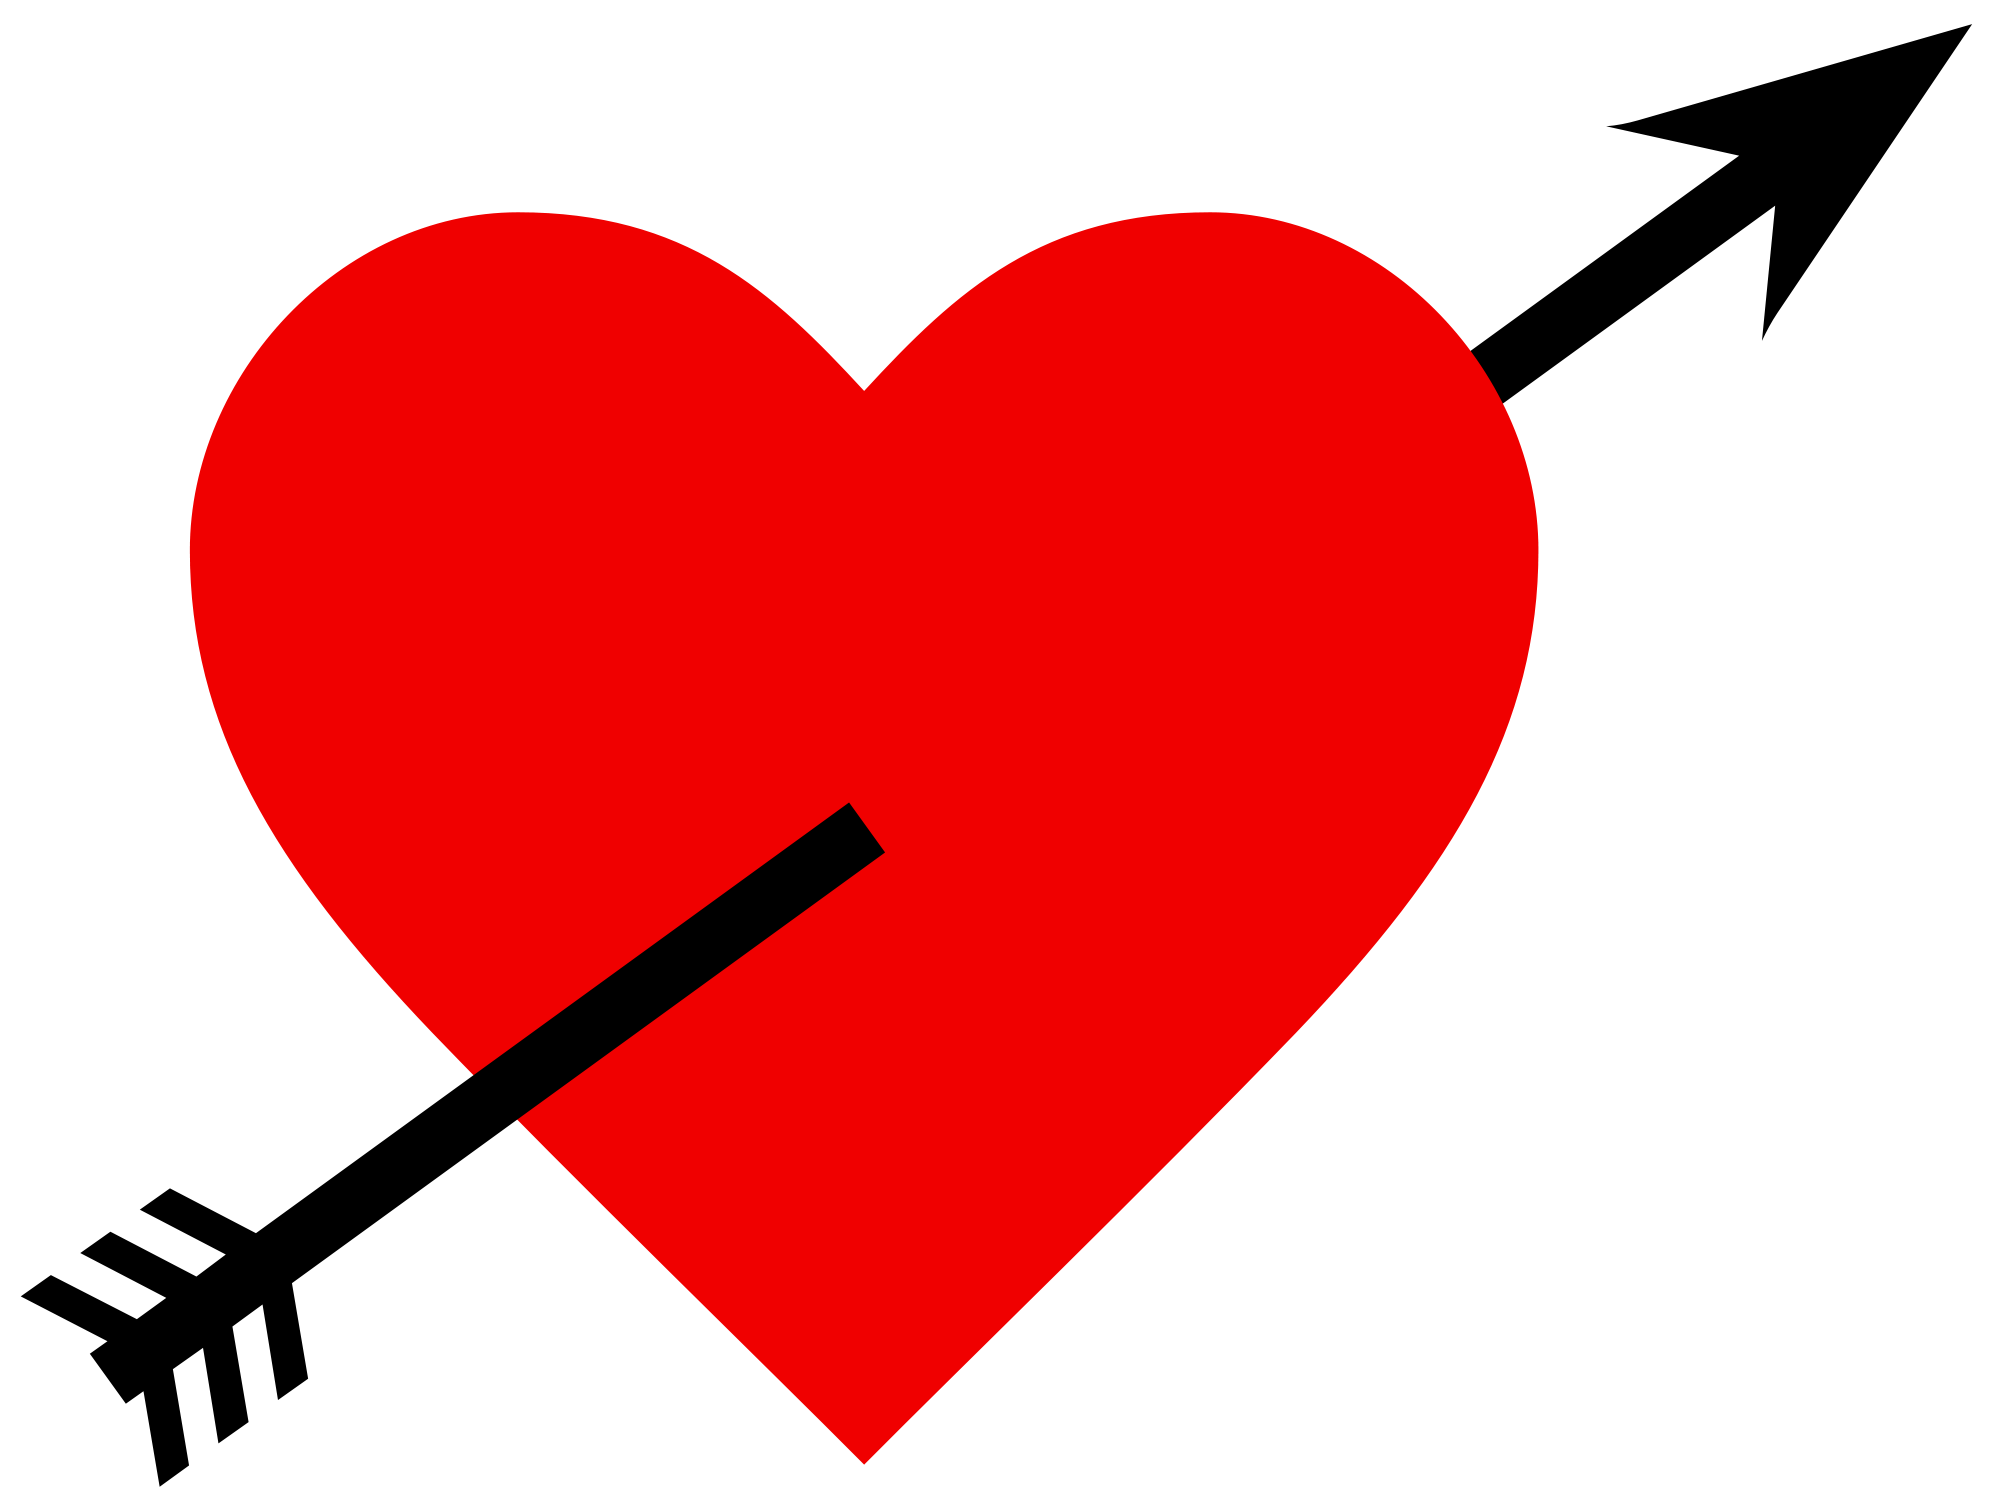 Clipart Of Hearts And Love At Getdrawings Free For Personal